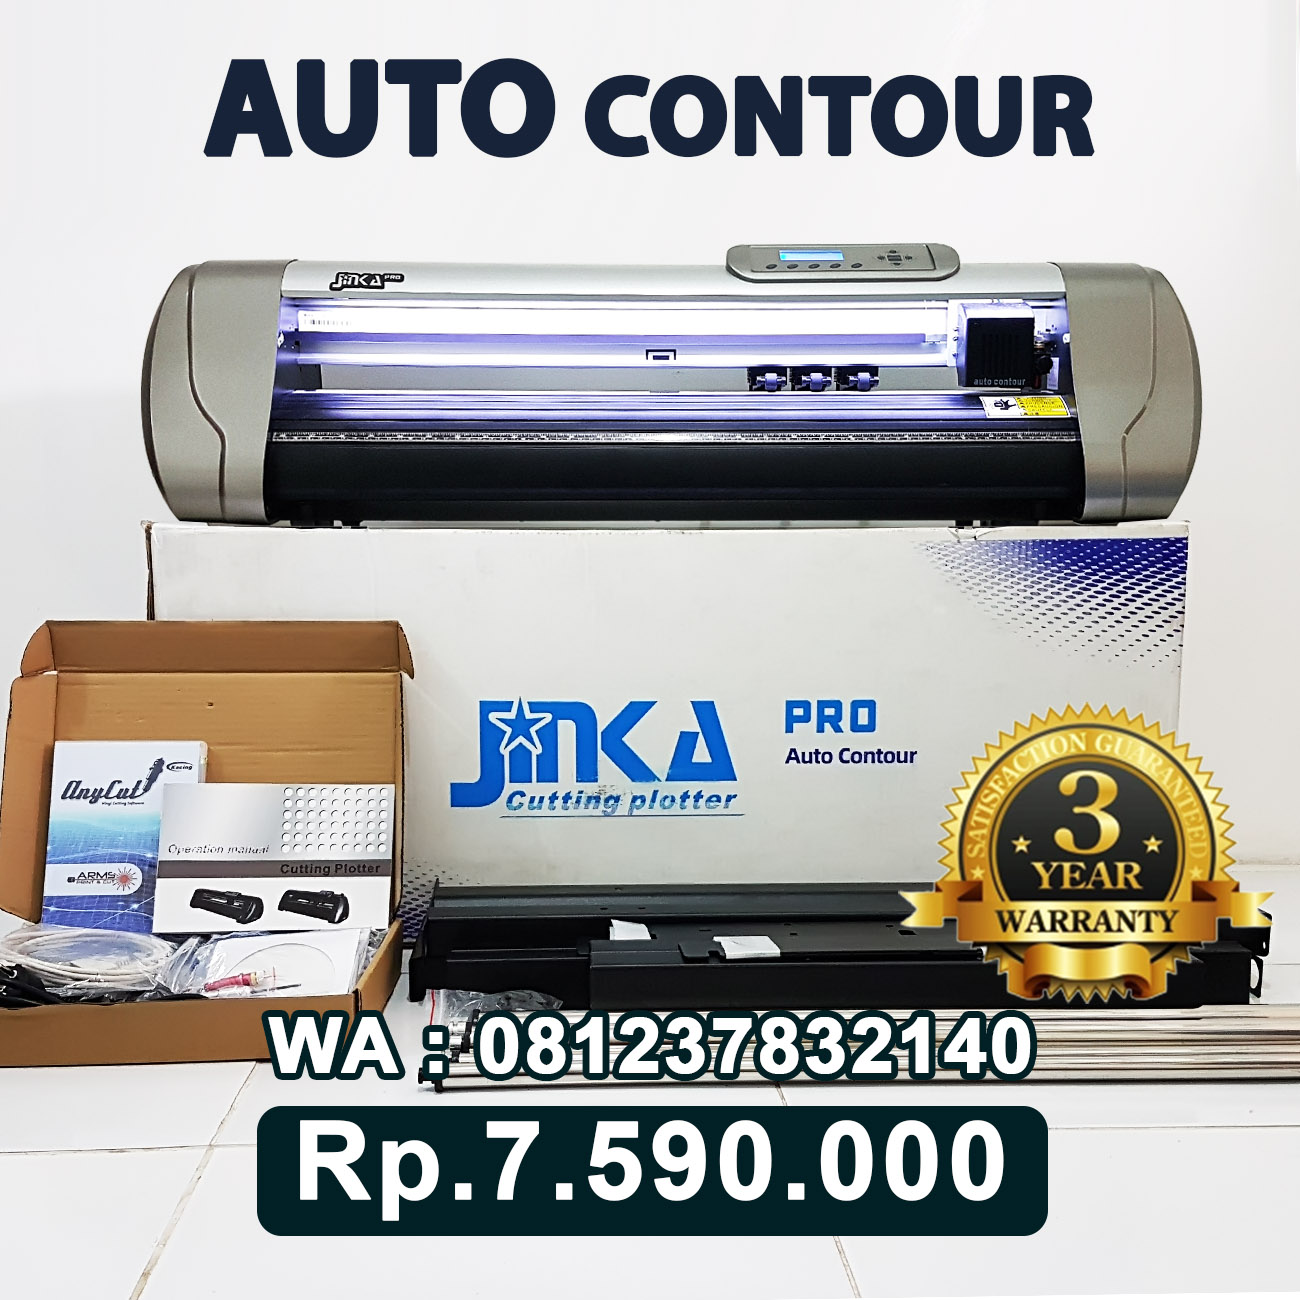 JUAL MESIN CUTTING STICKER JINKA PRO 722 LED AUTO CONTOUR CUT Sangatta